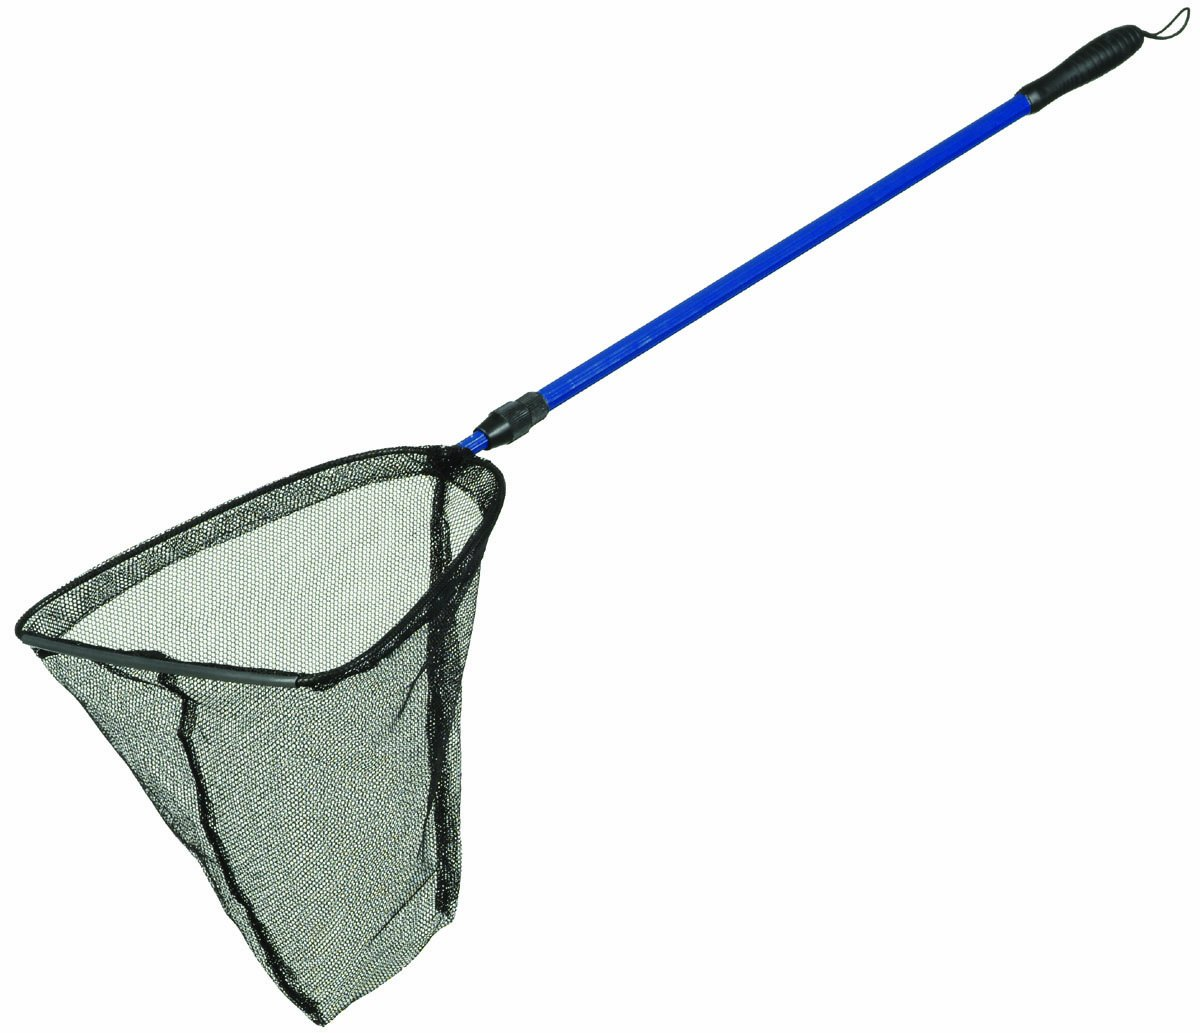 Pond fish net 14 diameter 33 60 telescopic handle ebay for Telescoping fishing net